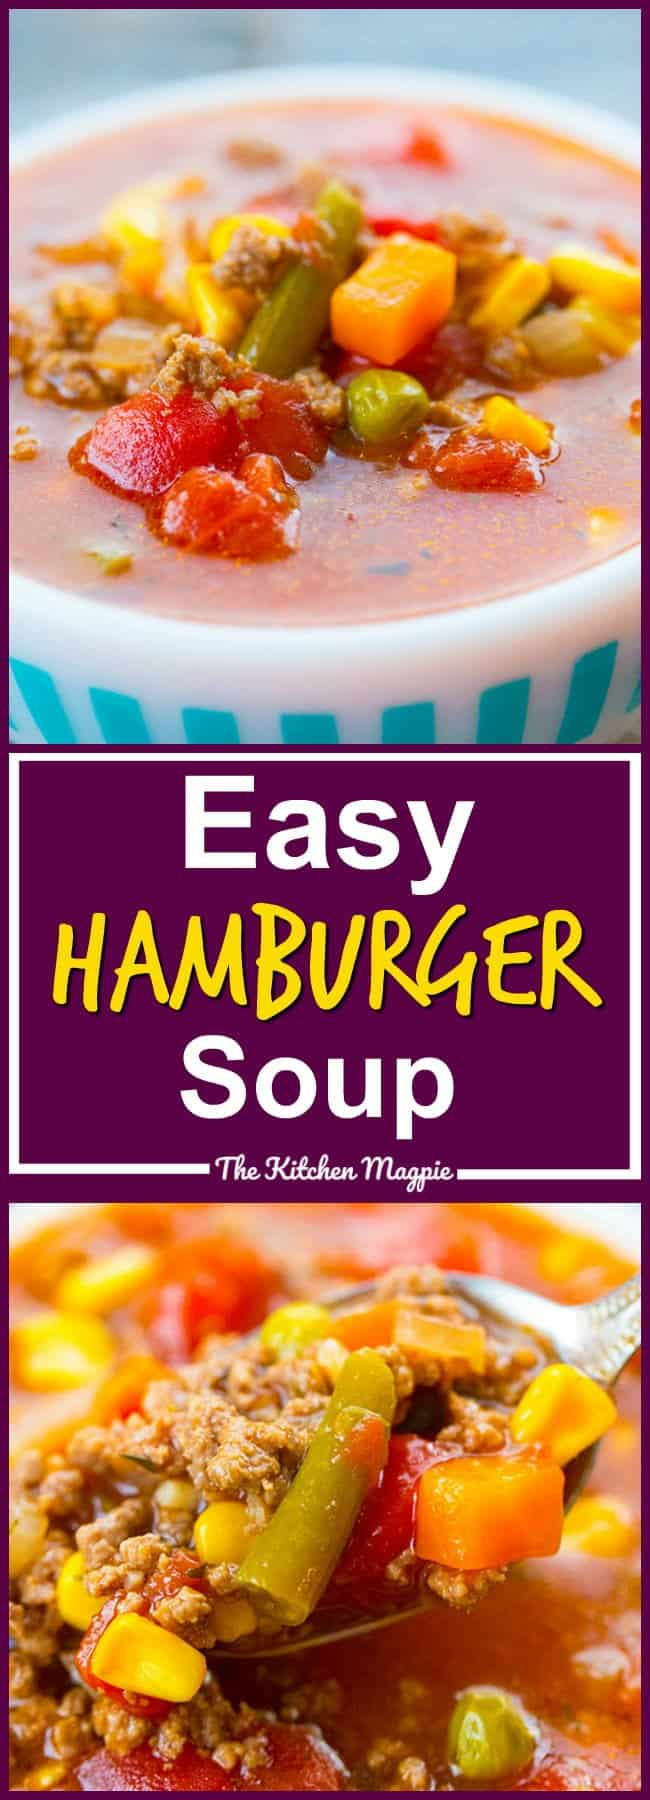 This easy to make and classic hamburger soup has been a dinnertime staple for decades now! #recipe #soup #instantpot #hamburger #recipe #dinner #supper #slowcooker